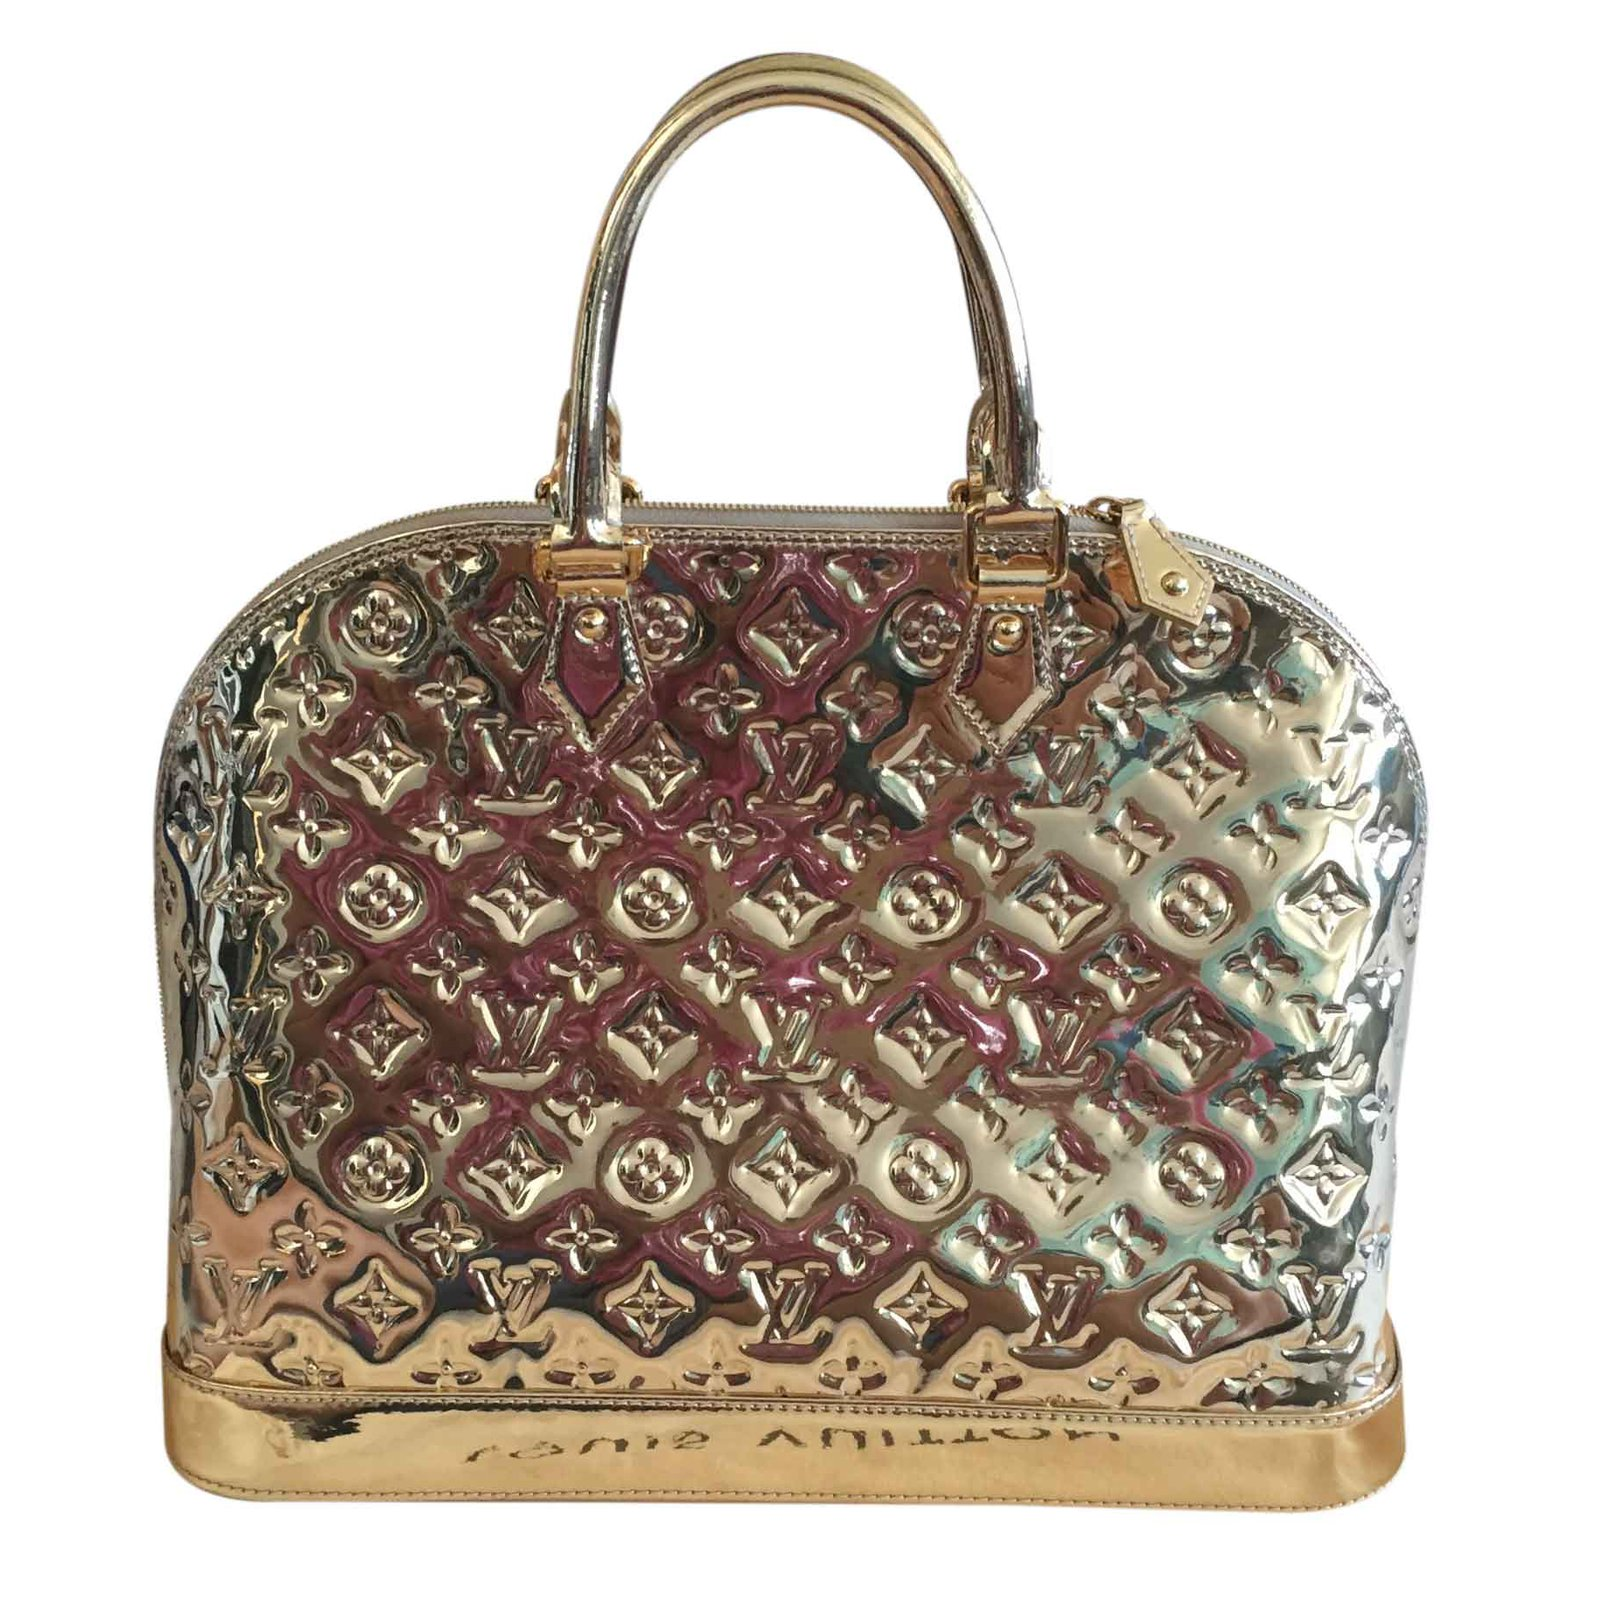 9a50fa0fc7ec Louis Vuitton ALMA MM MIROIR DORE GOLD - SPECIAL EDITION Handbags Patent  leather Golden ref.23487 - Joli Closet